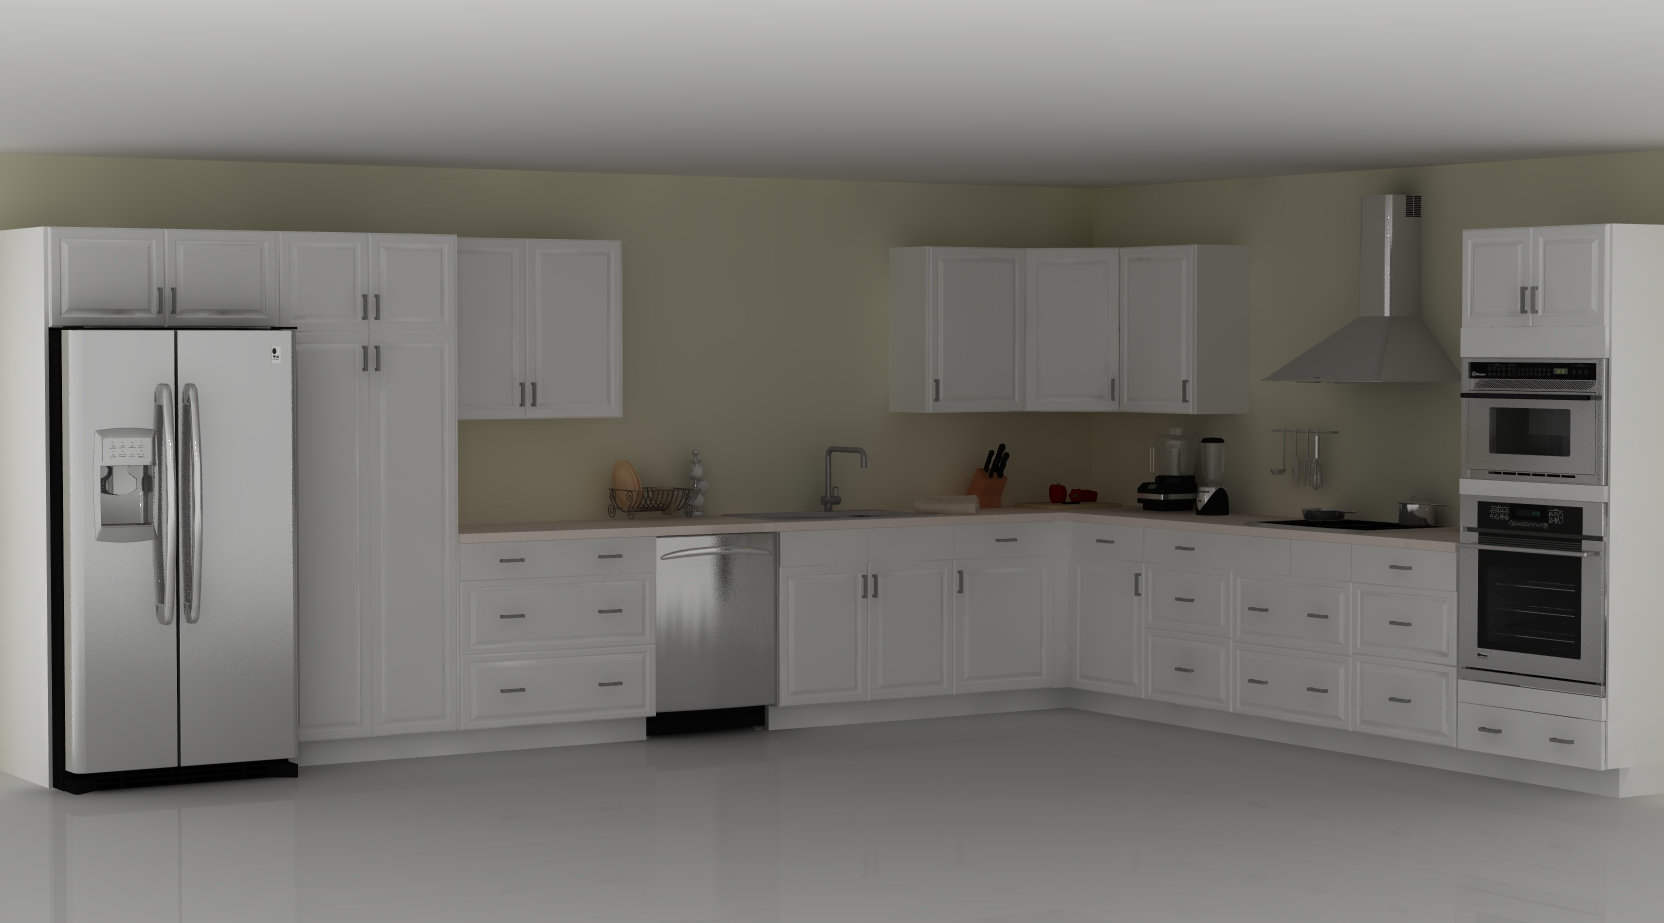 Pros and cons of L shaped kitchen ... pros and cons of an l-shaped ikea kitchen: an ... PRQEQVO